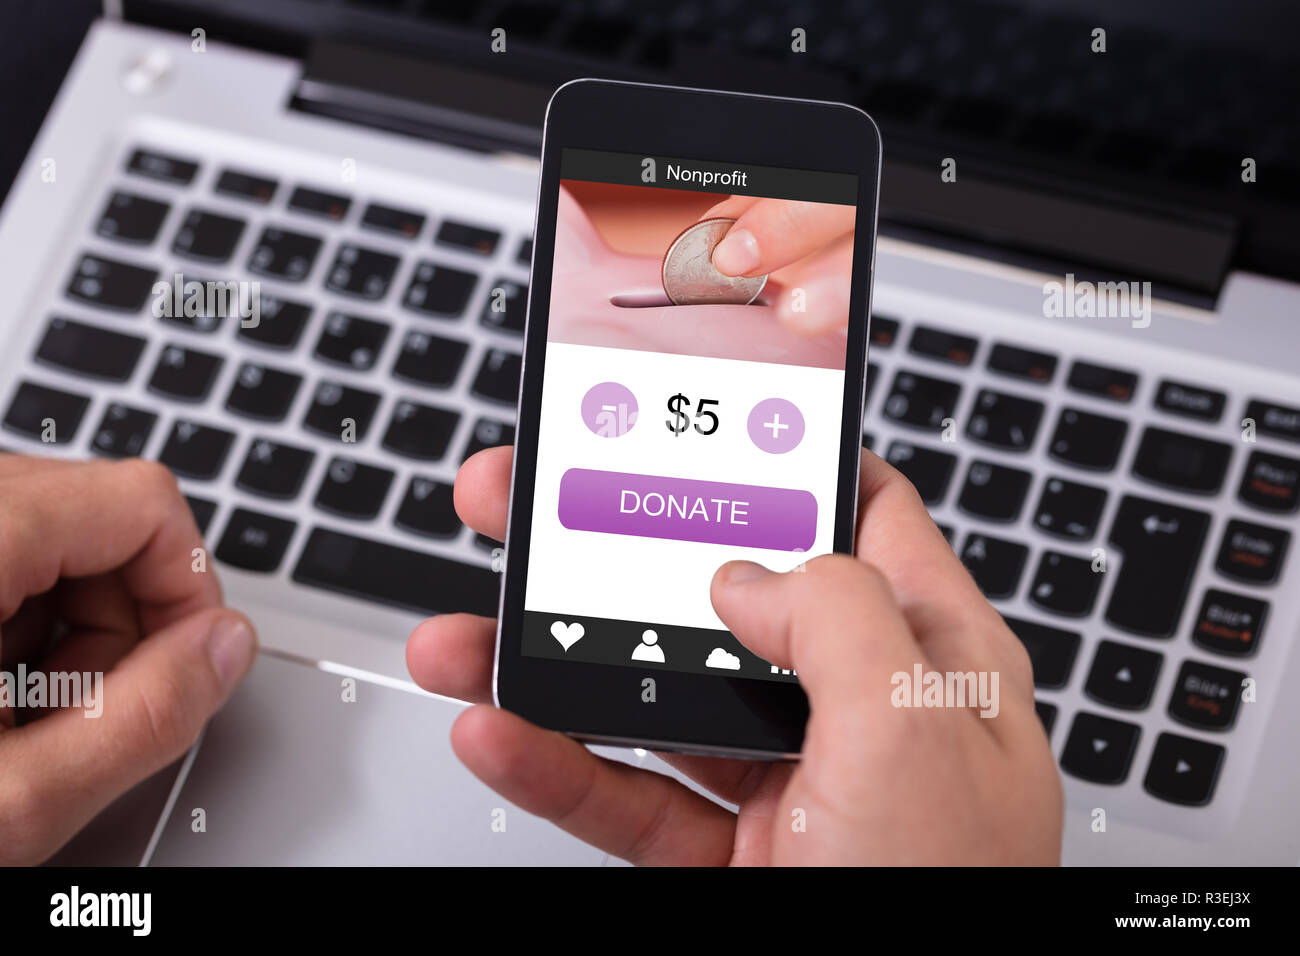 Man's Hand Donating Money On Mobile Phone Over Laptop - Stock Image